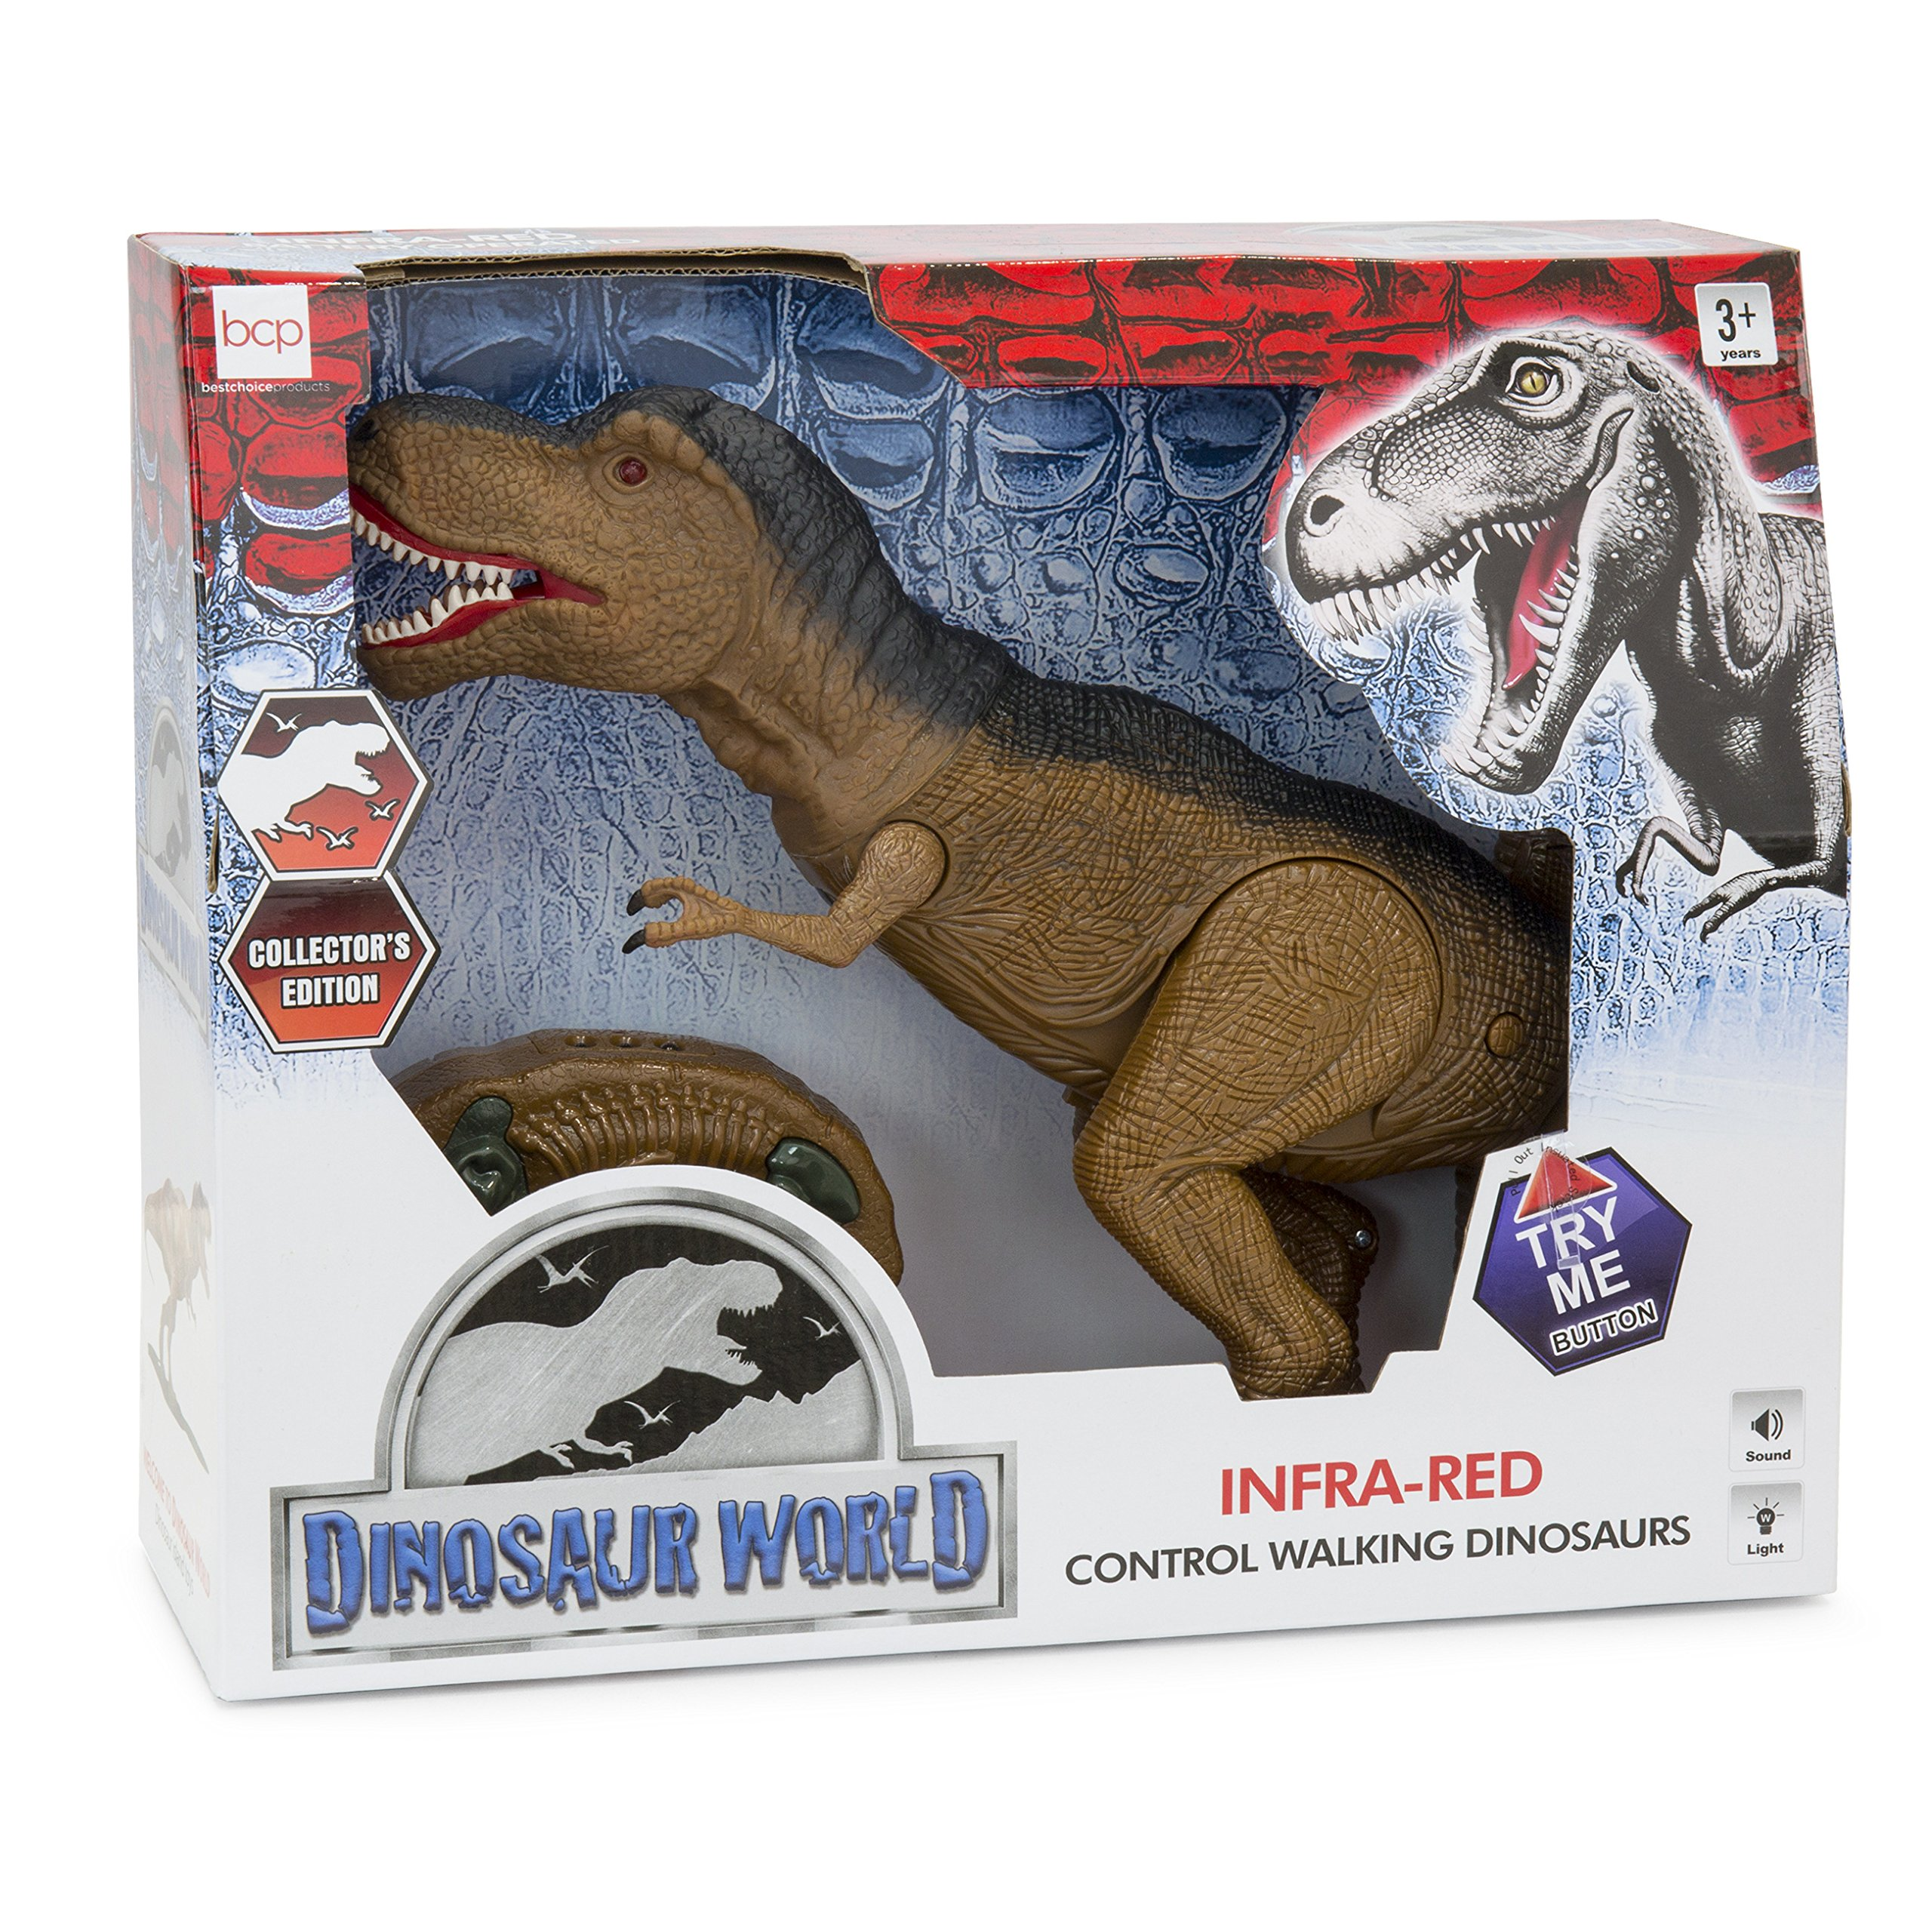 Best Choice Products 19in Kids Walking Remote Control Tyrannosaurus Rex Dinosaur RC Toy w/ Light-Up Eyes, Sounds by Best Choice Products (Image #7)